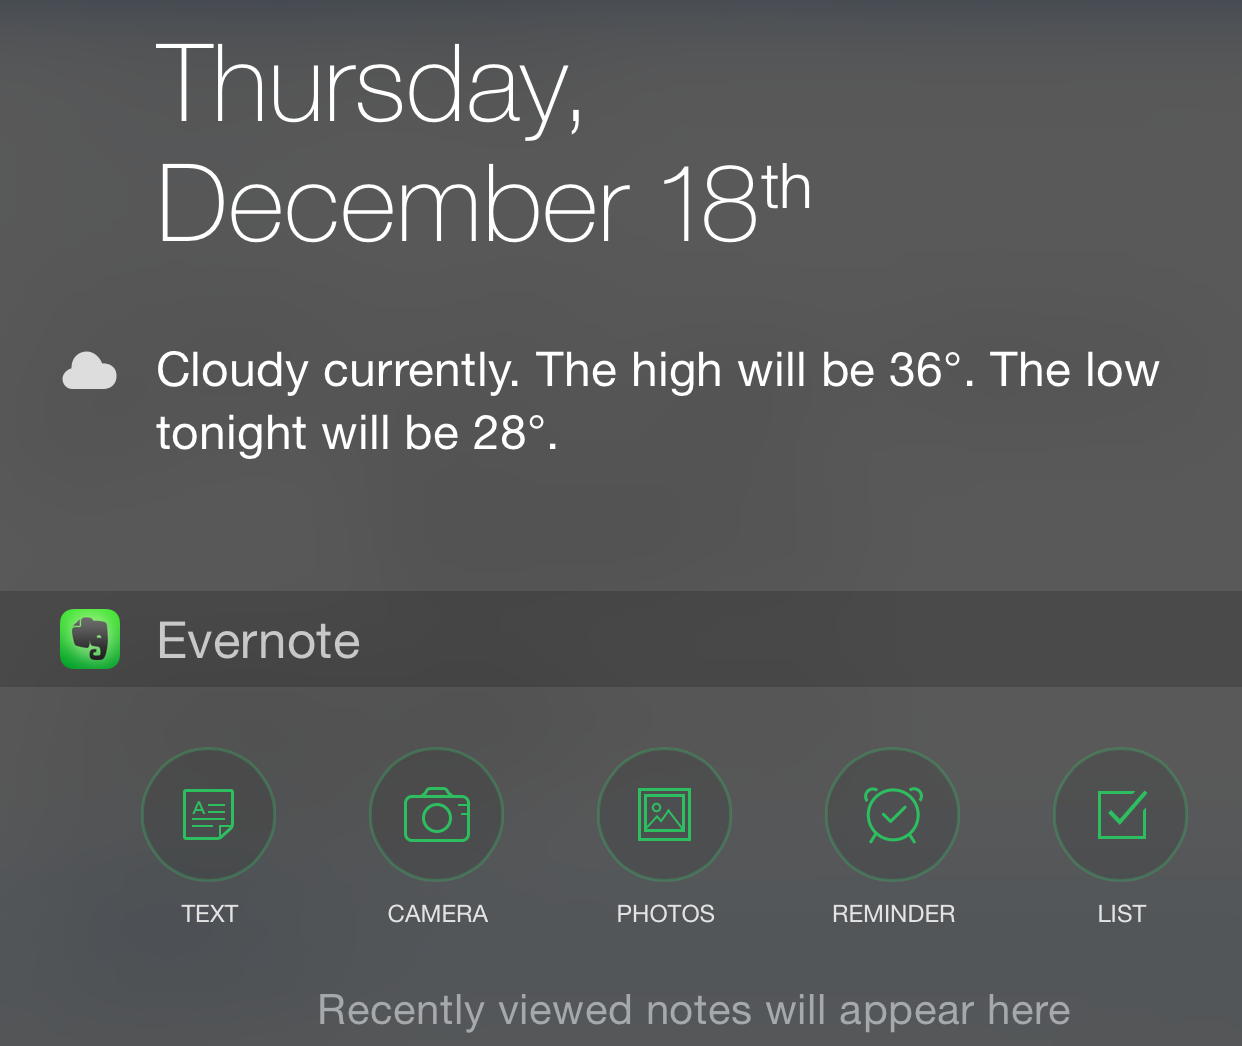 Evernote notification center